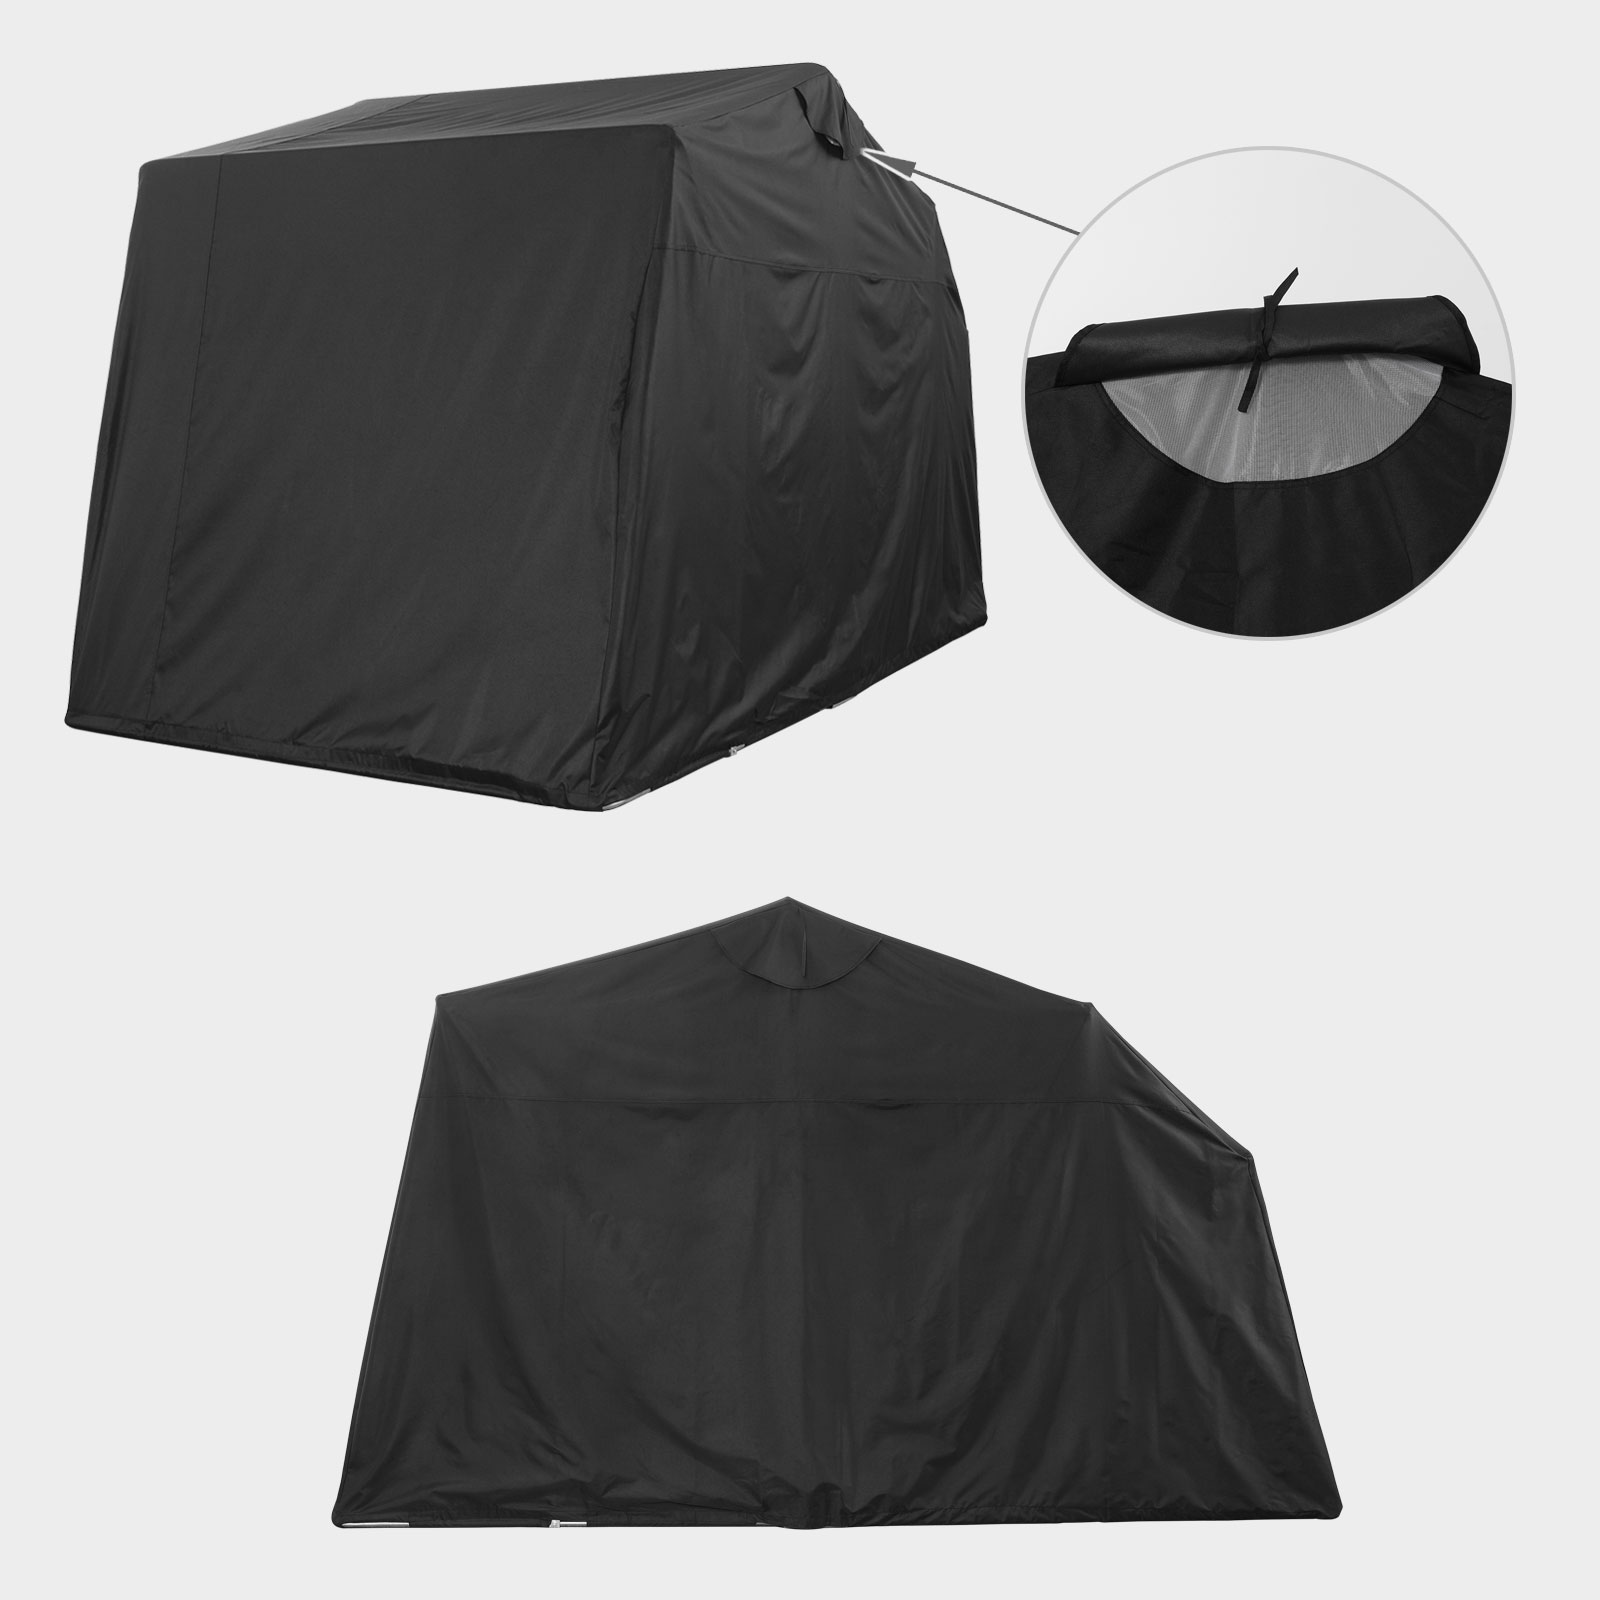 Motorcycle storage tent camping motor bike folding cover shed outdoor garage new ebay - Motorcycle foldable garage tent cover ...